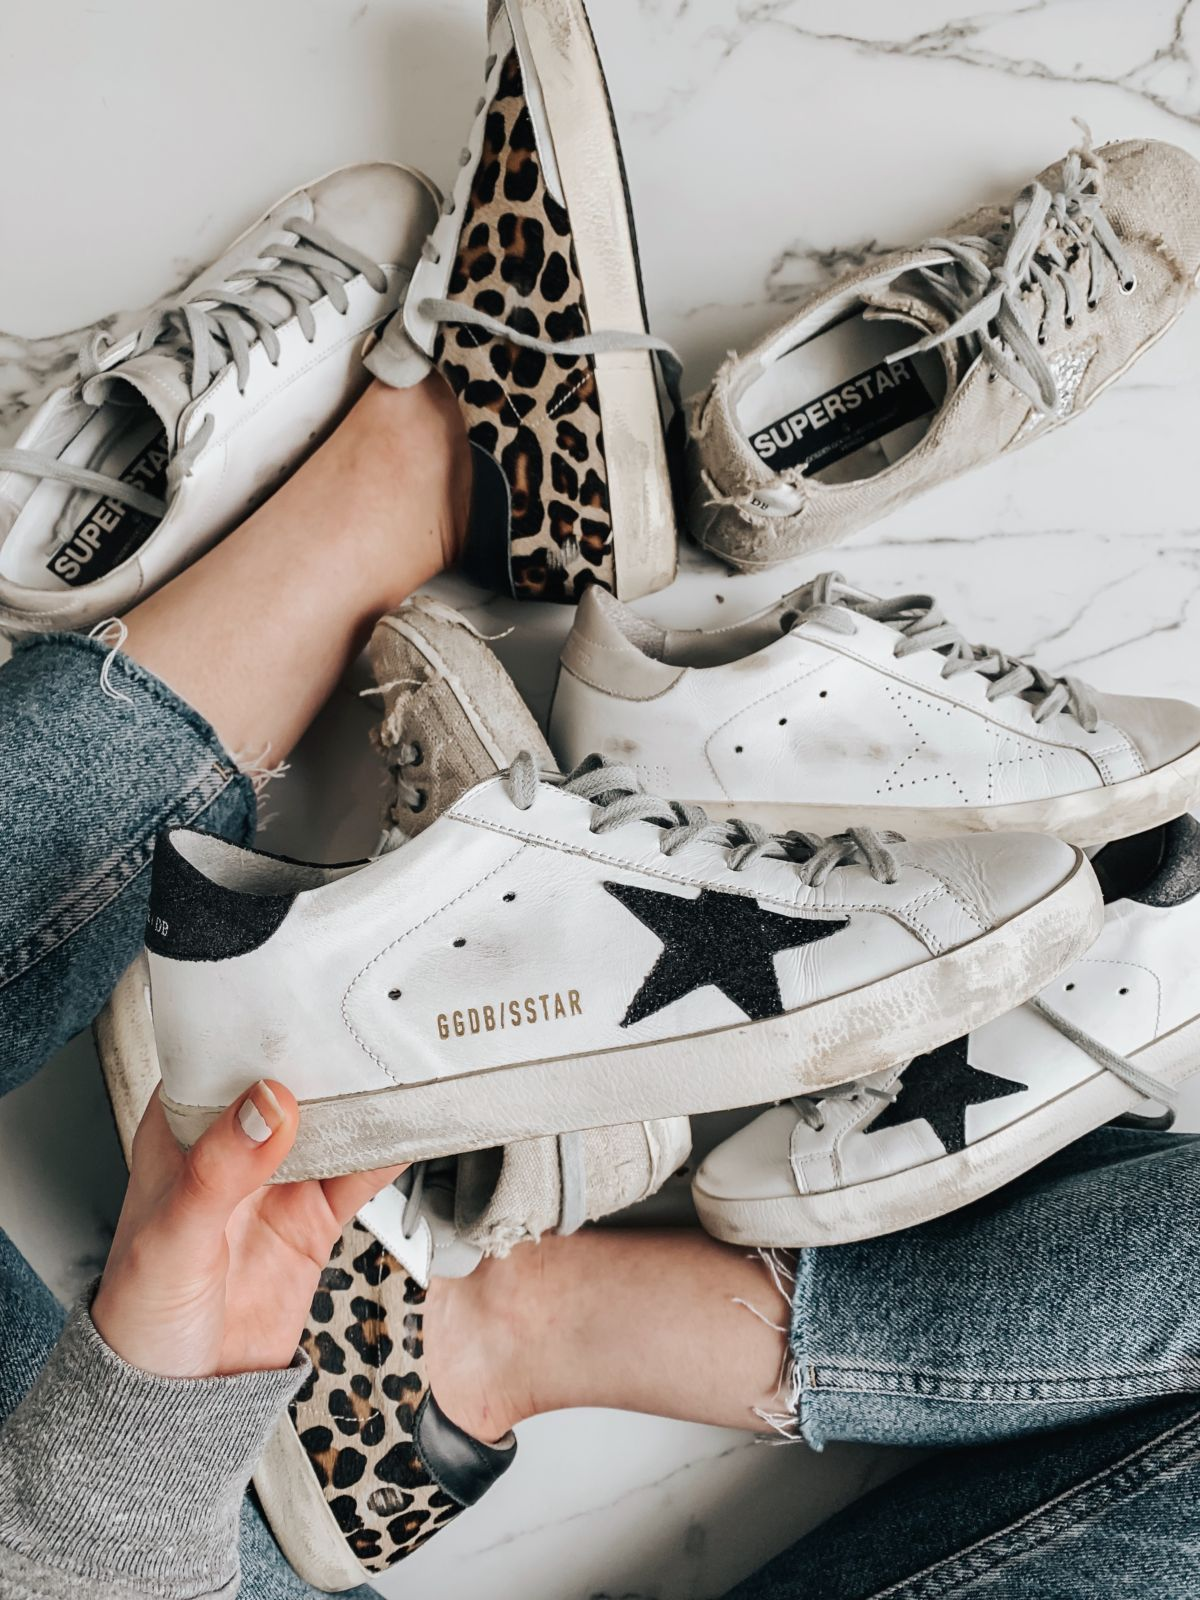 Are Golden Goose Sneakers Worth The